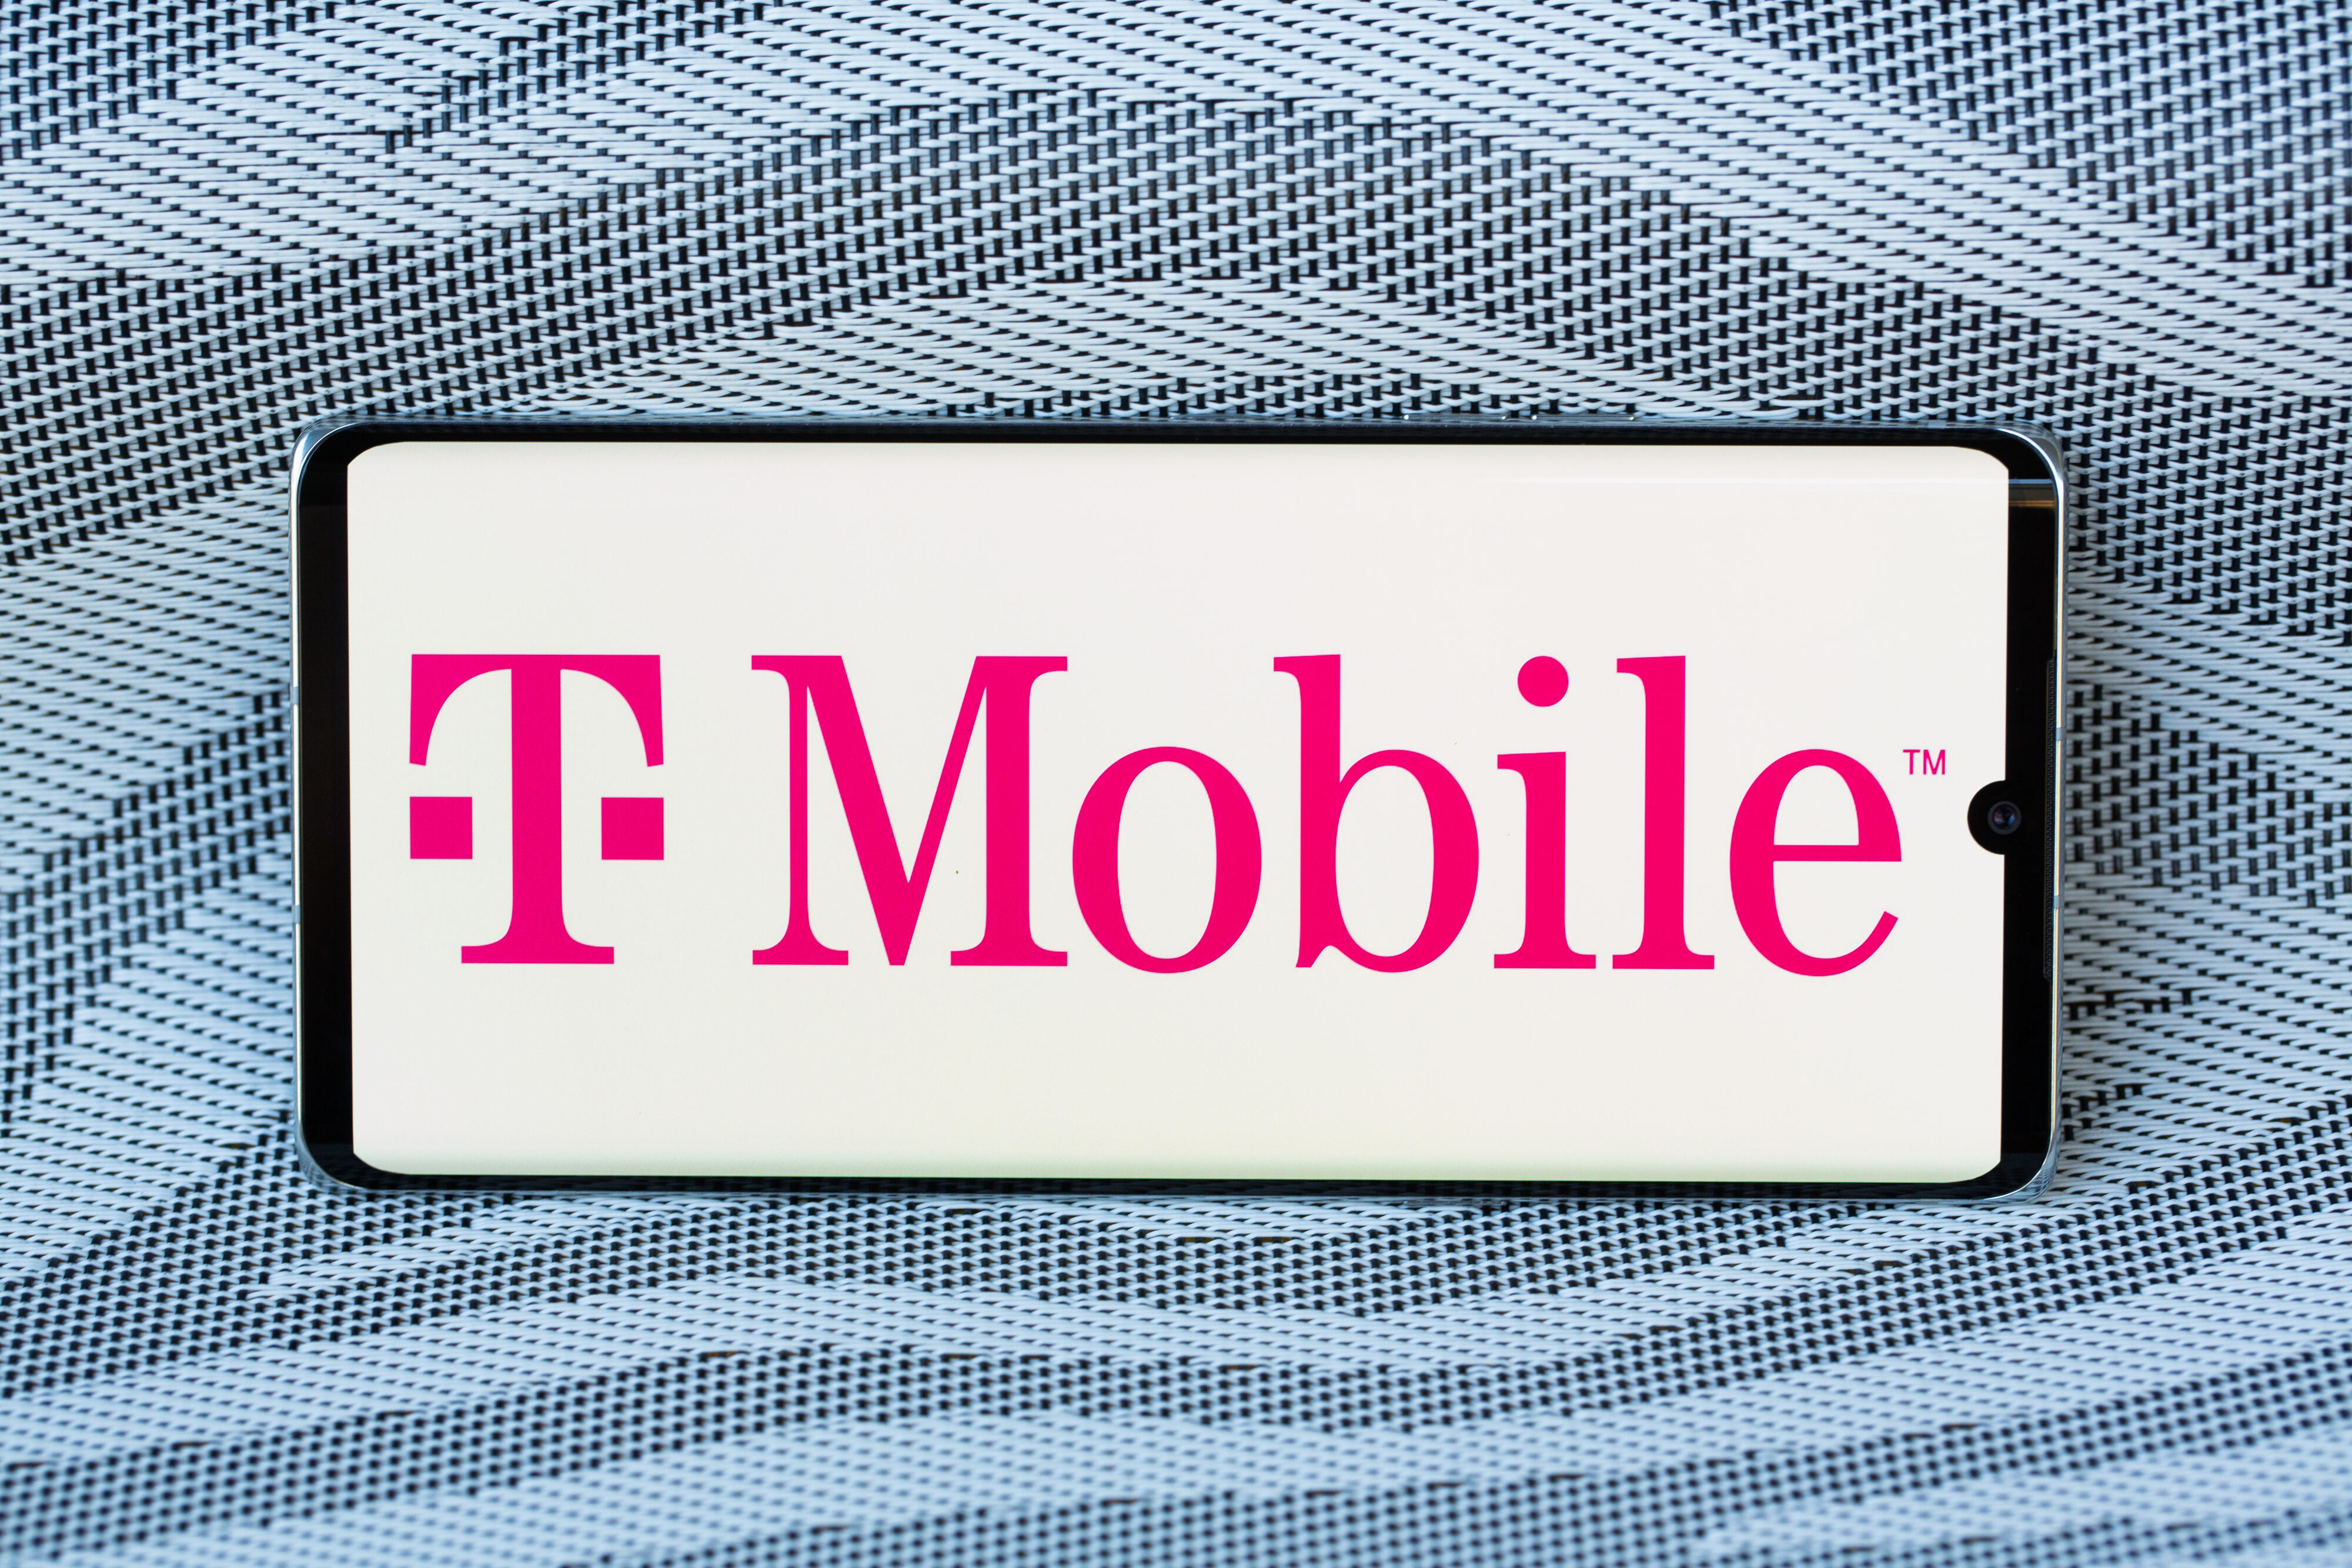 tmobile-logo-phone-4193